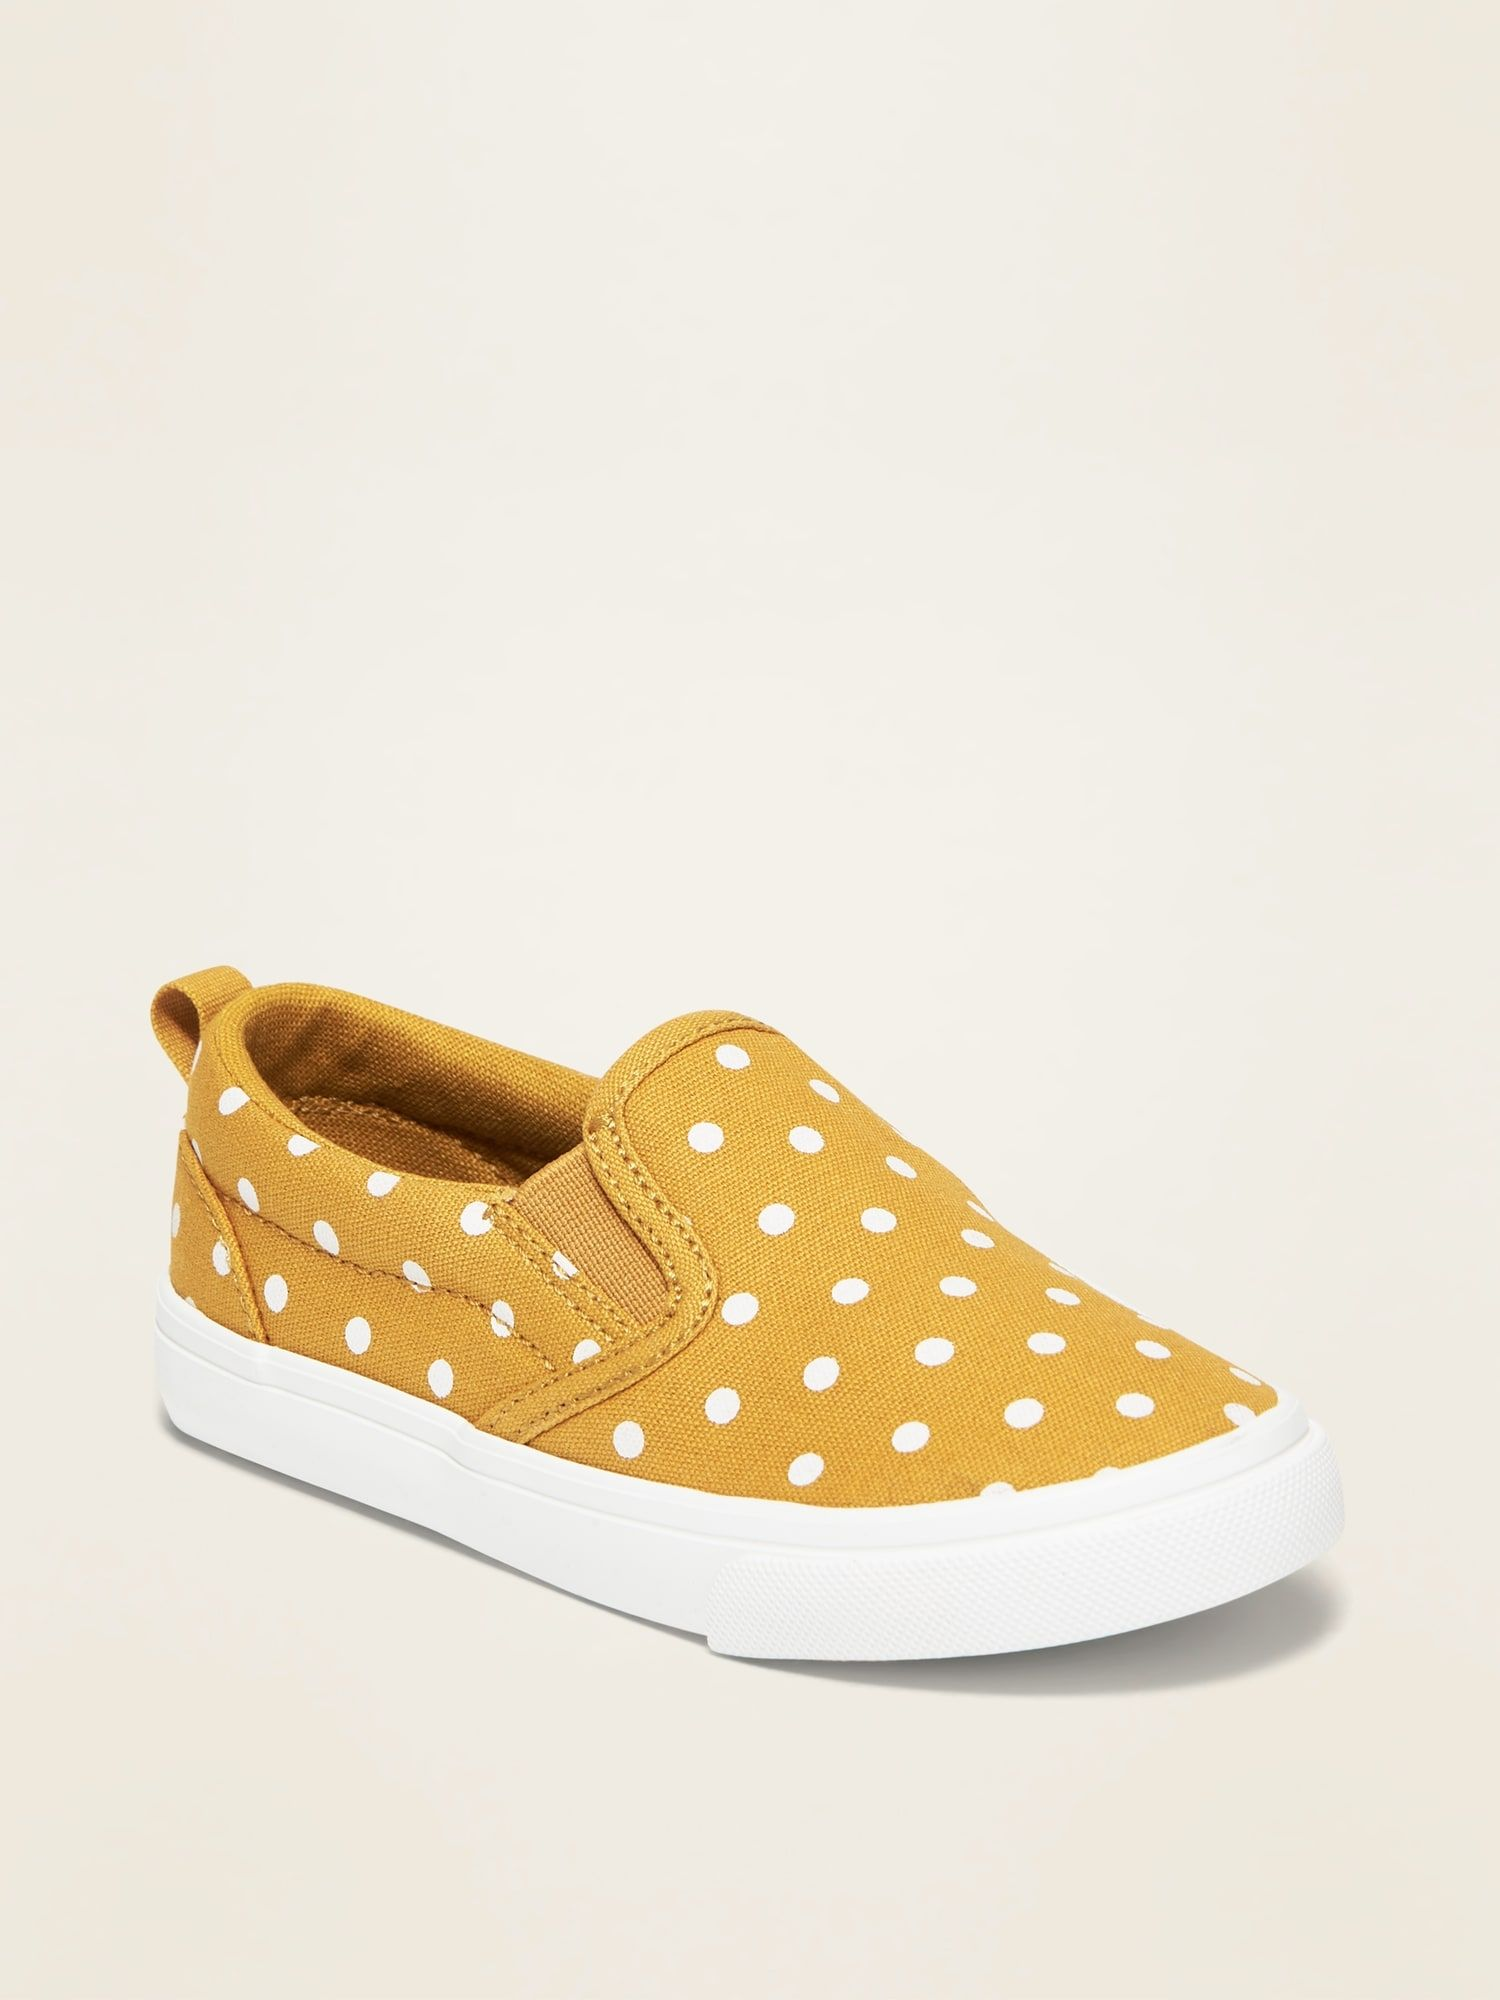 29++ Old navy toddler shoes ideas ideas